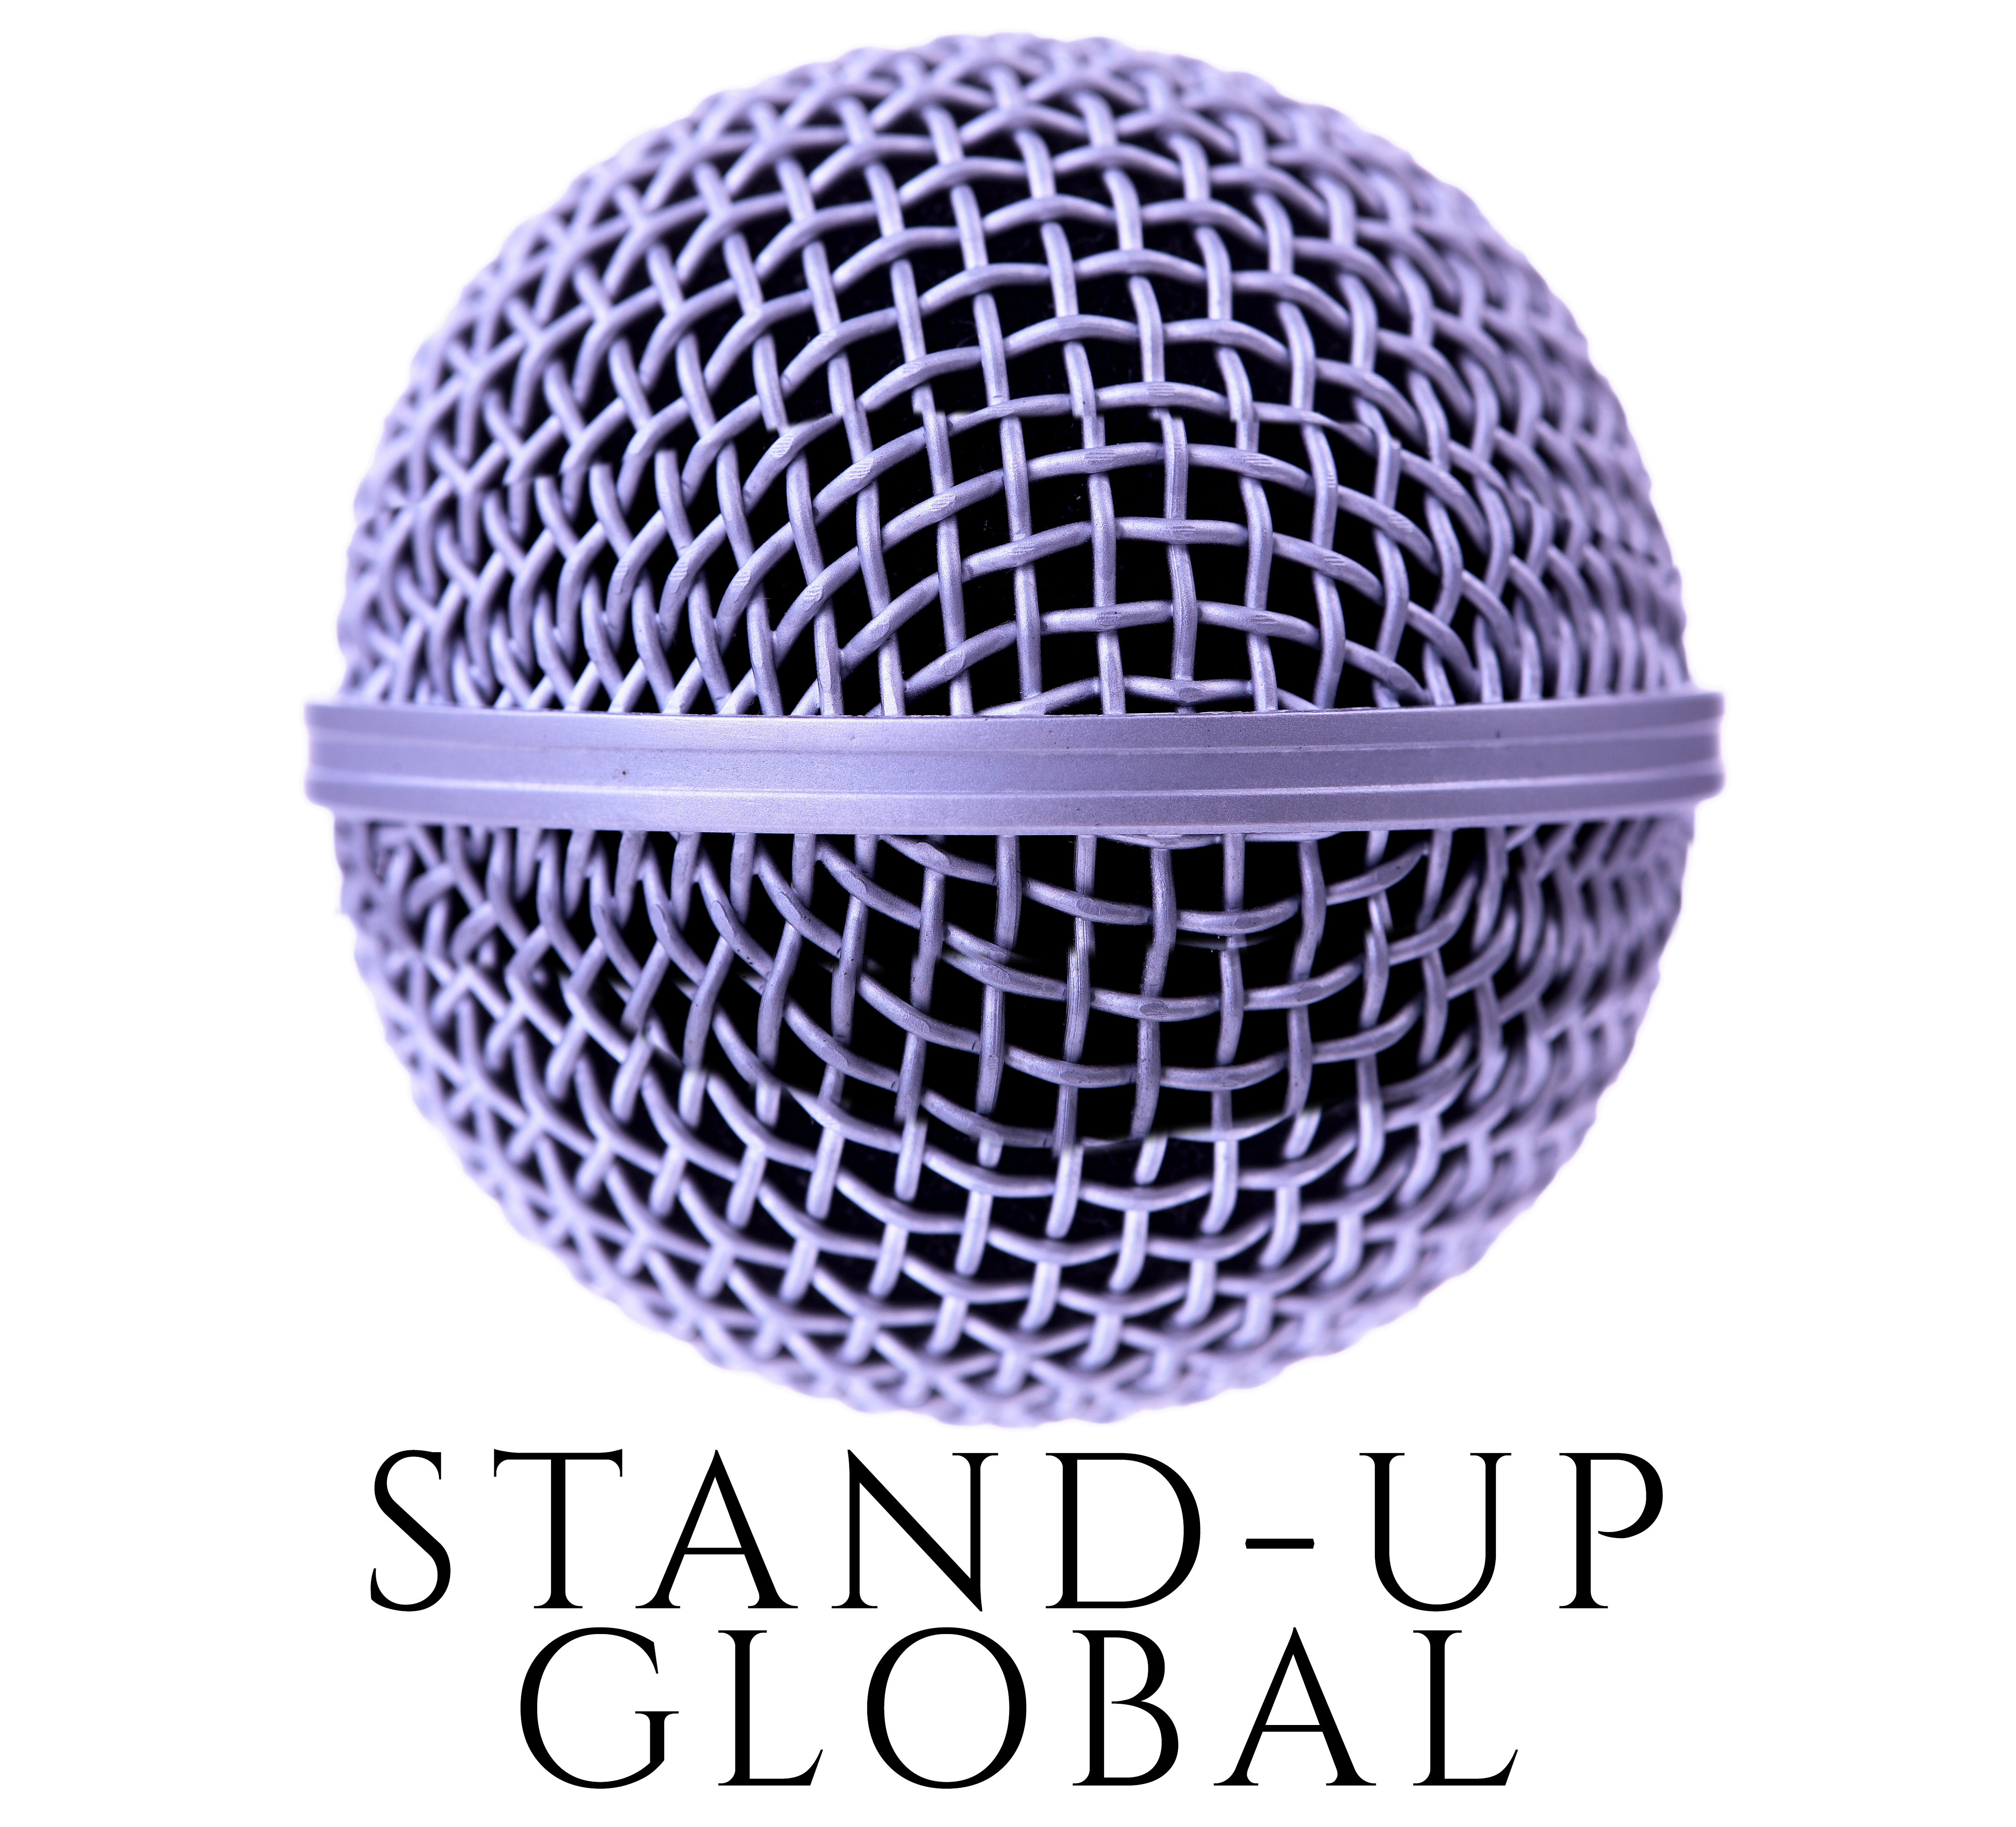 Stand-Up Global